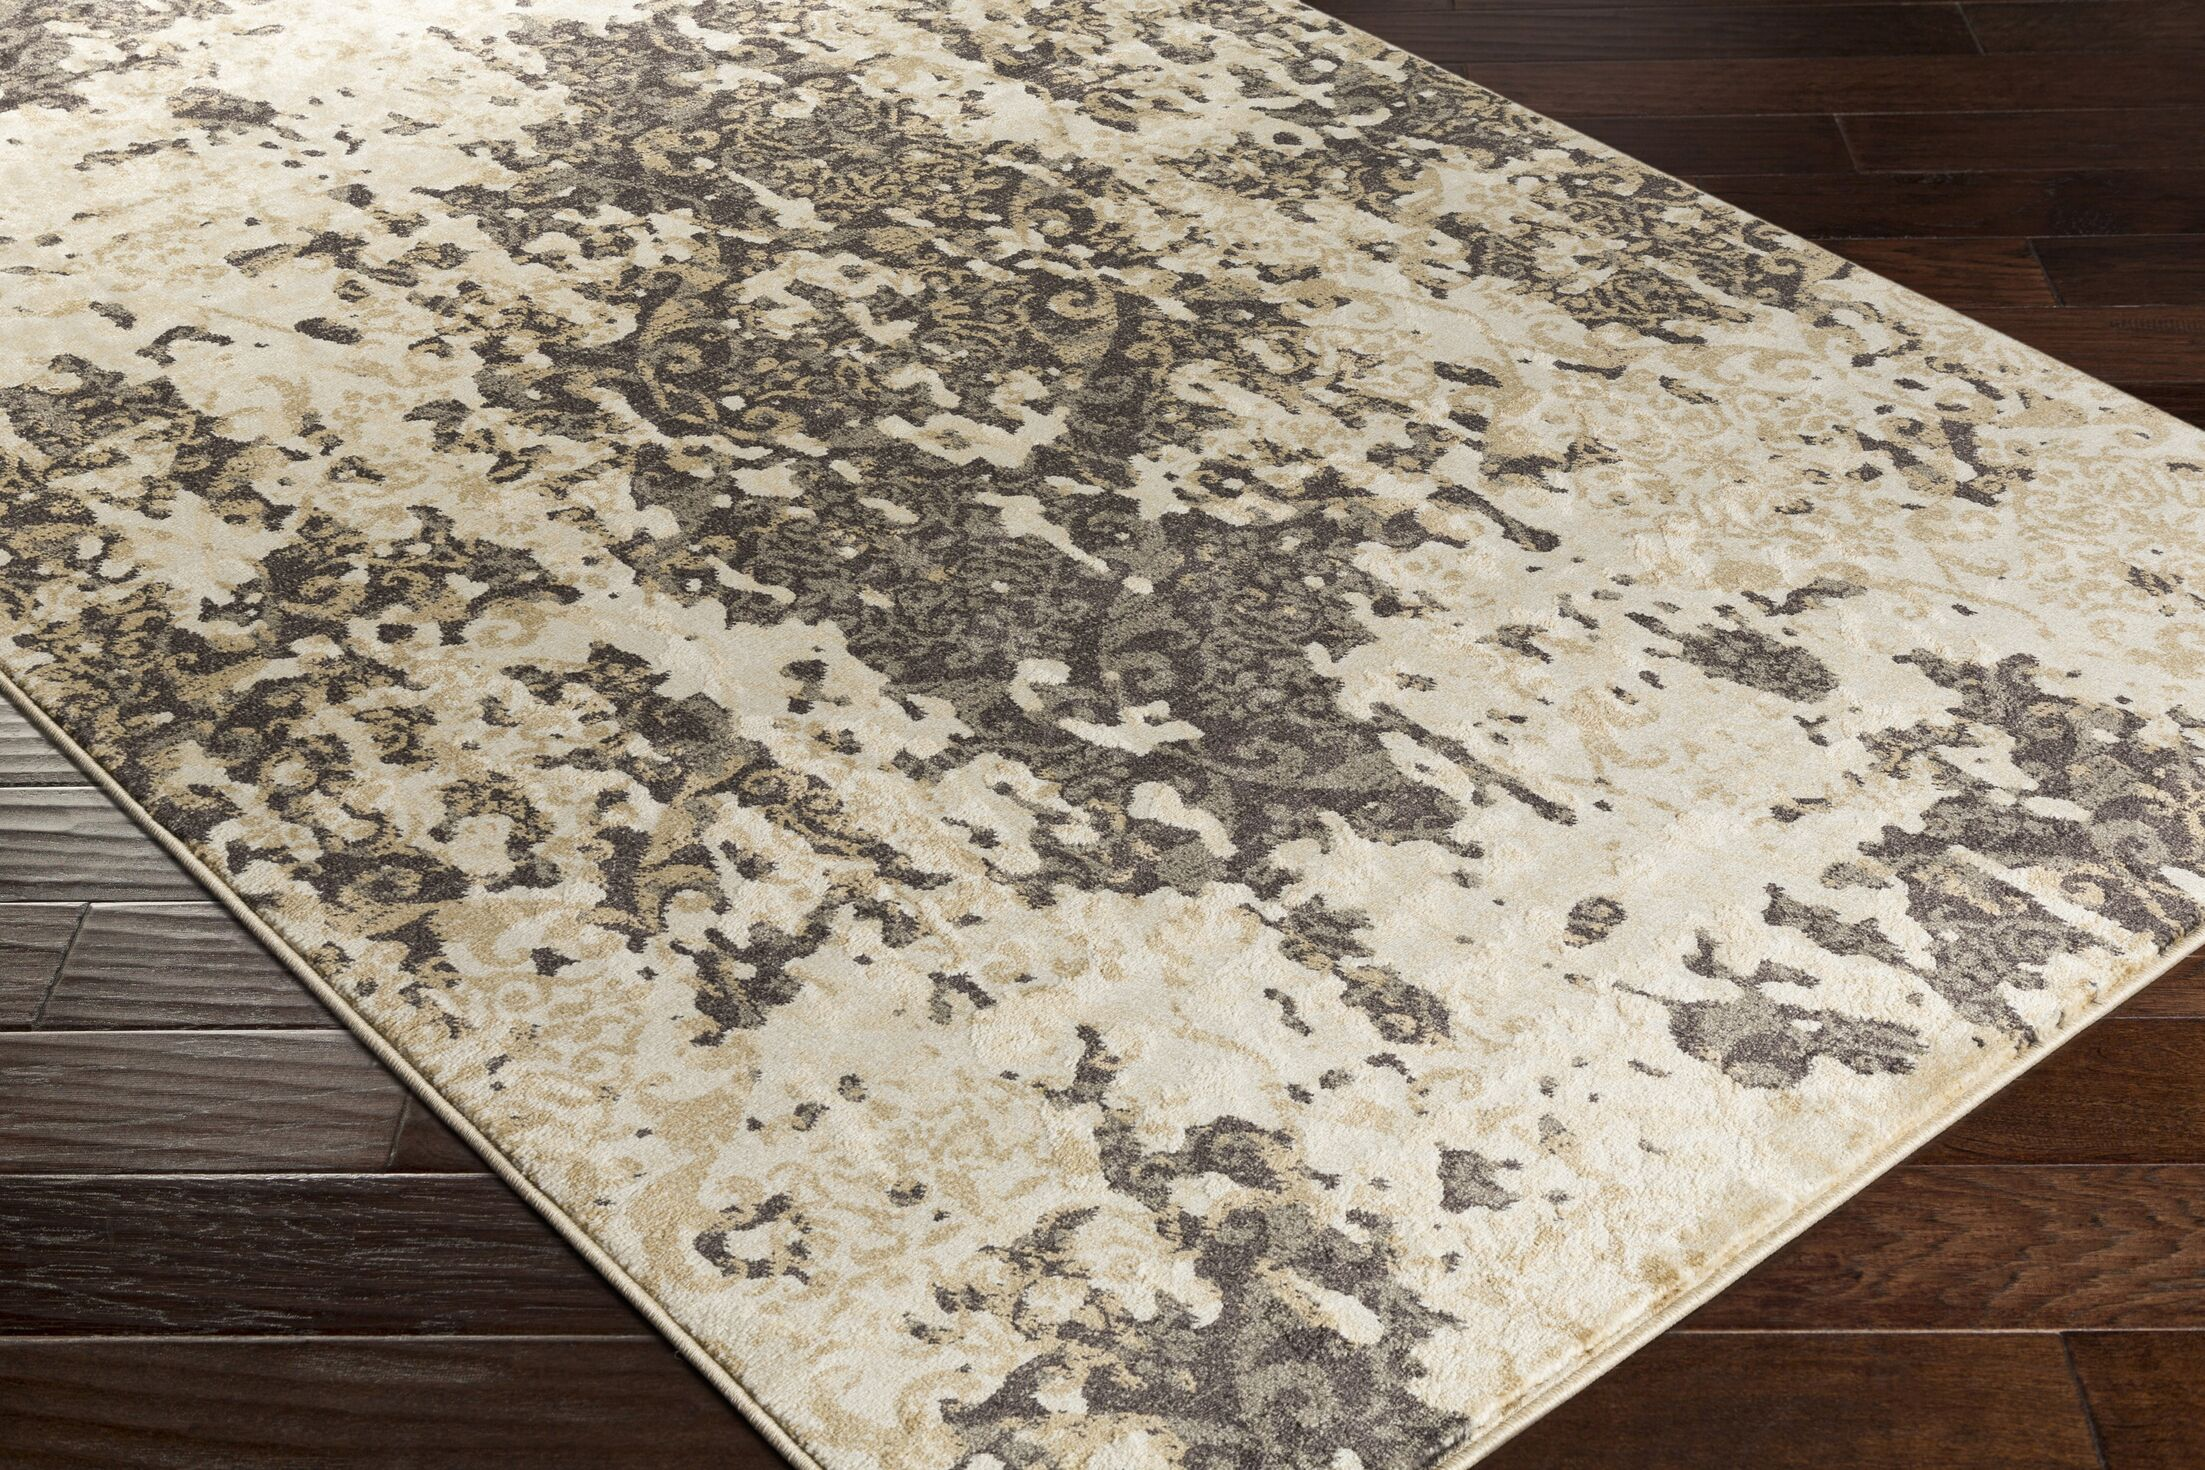 Divernon Beige Abstract Area Rug Rug Size: Rectangle 7'10